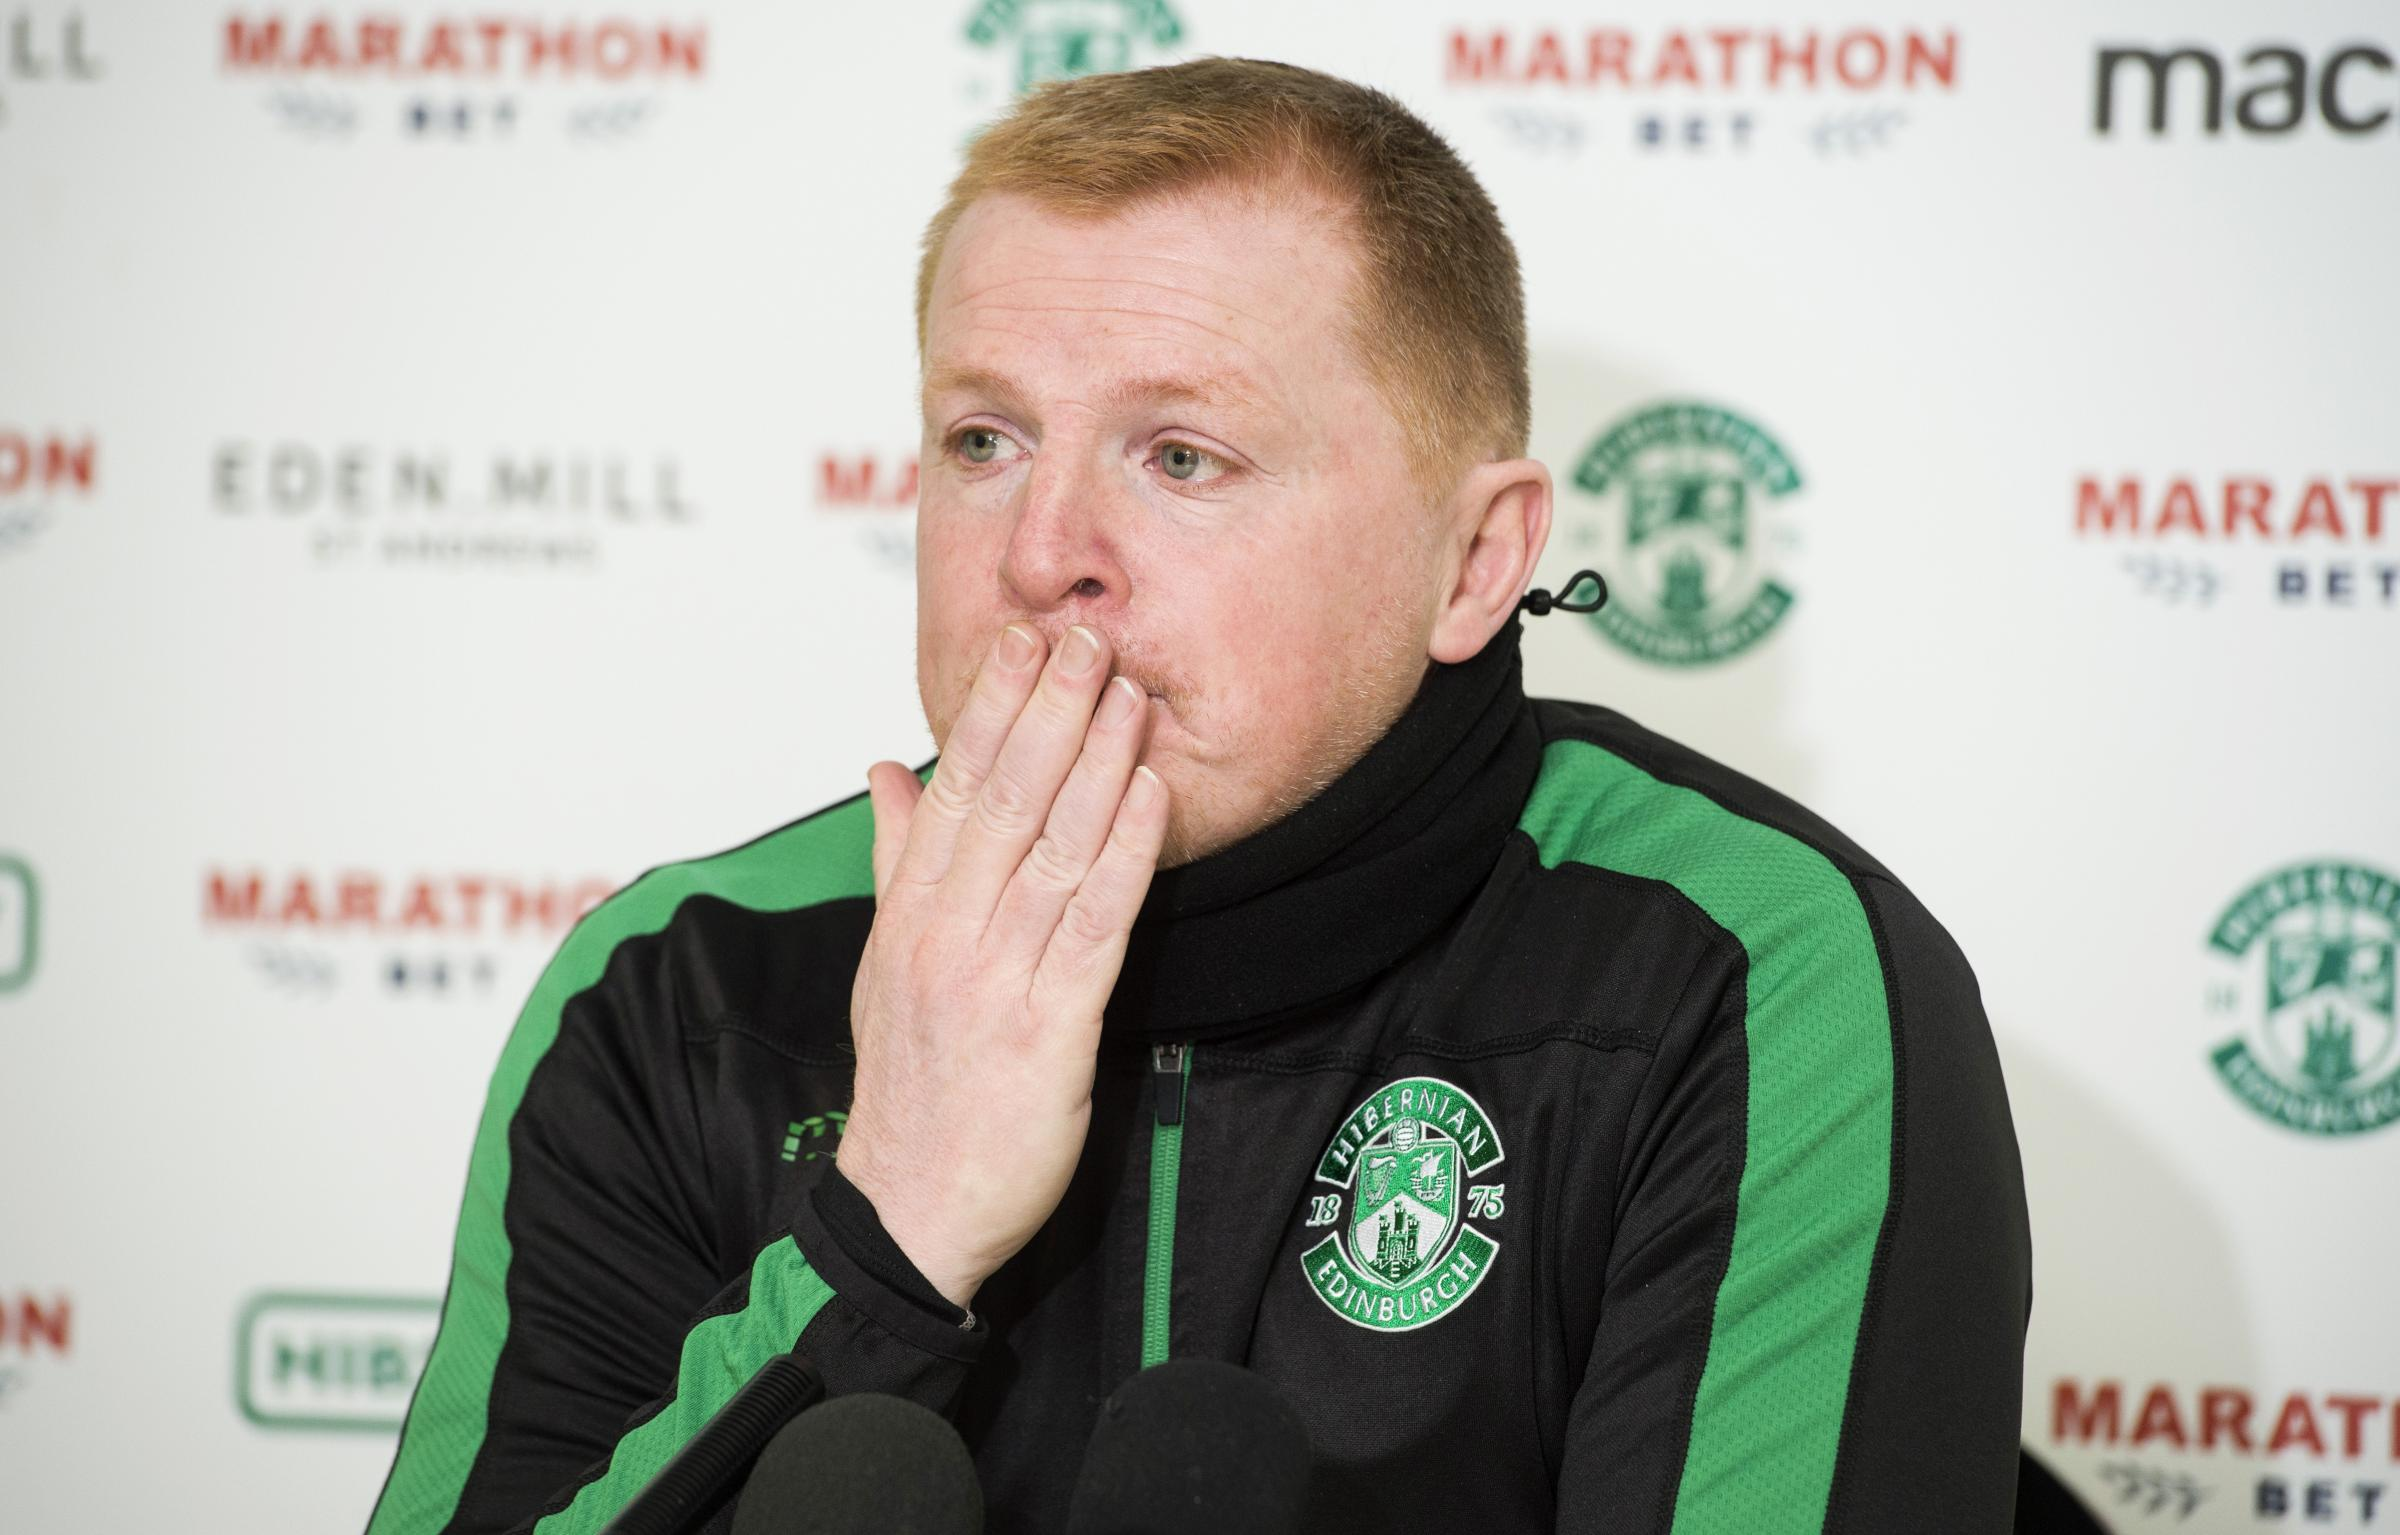 Neil Lennon said he regretted his reaction to his dismissal